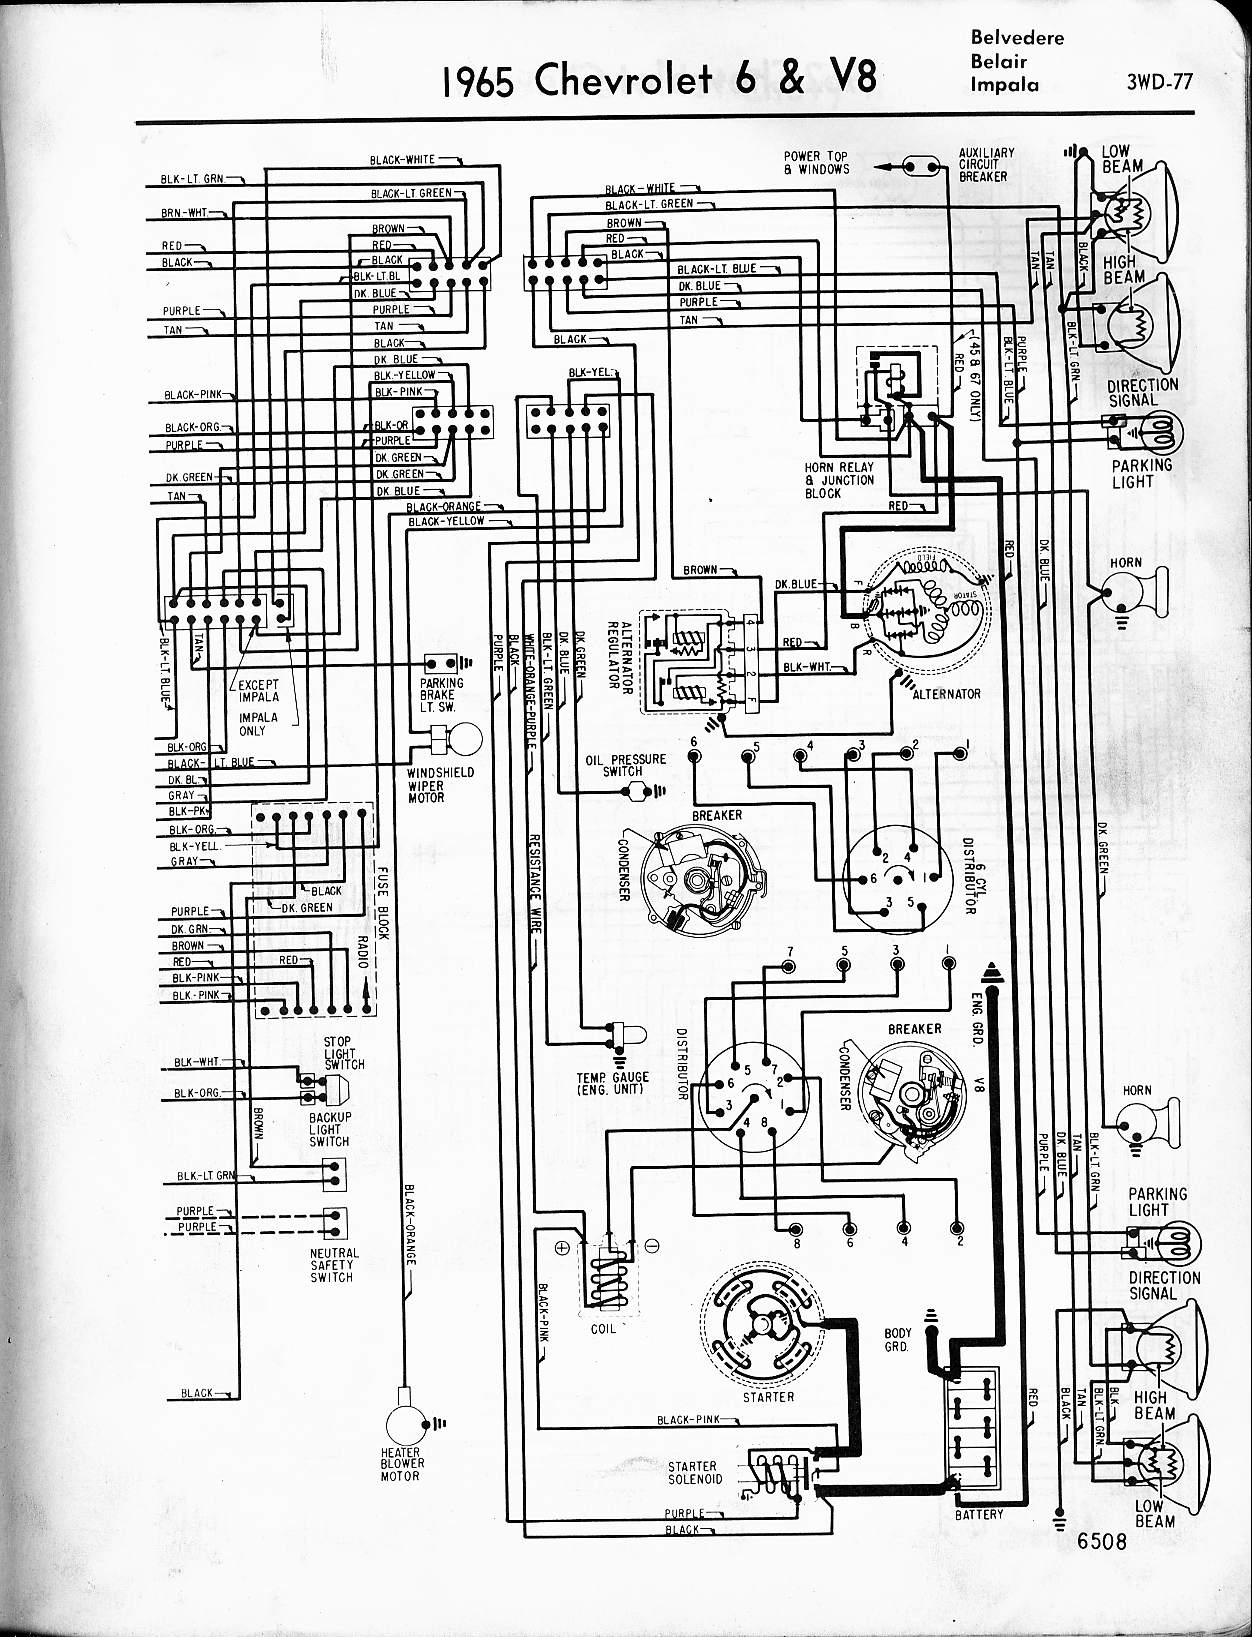 MWireChev65_3WD 077 1969 chevelle wiring diagram pdf 1969 thunderbird dash wiring 1967 chevelle wiring harness at readyjetset.co